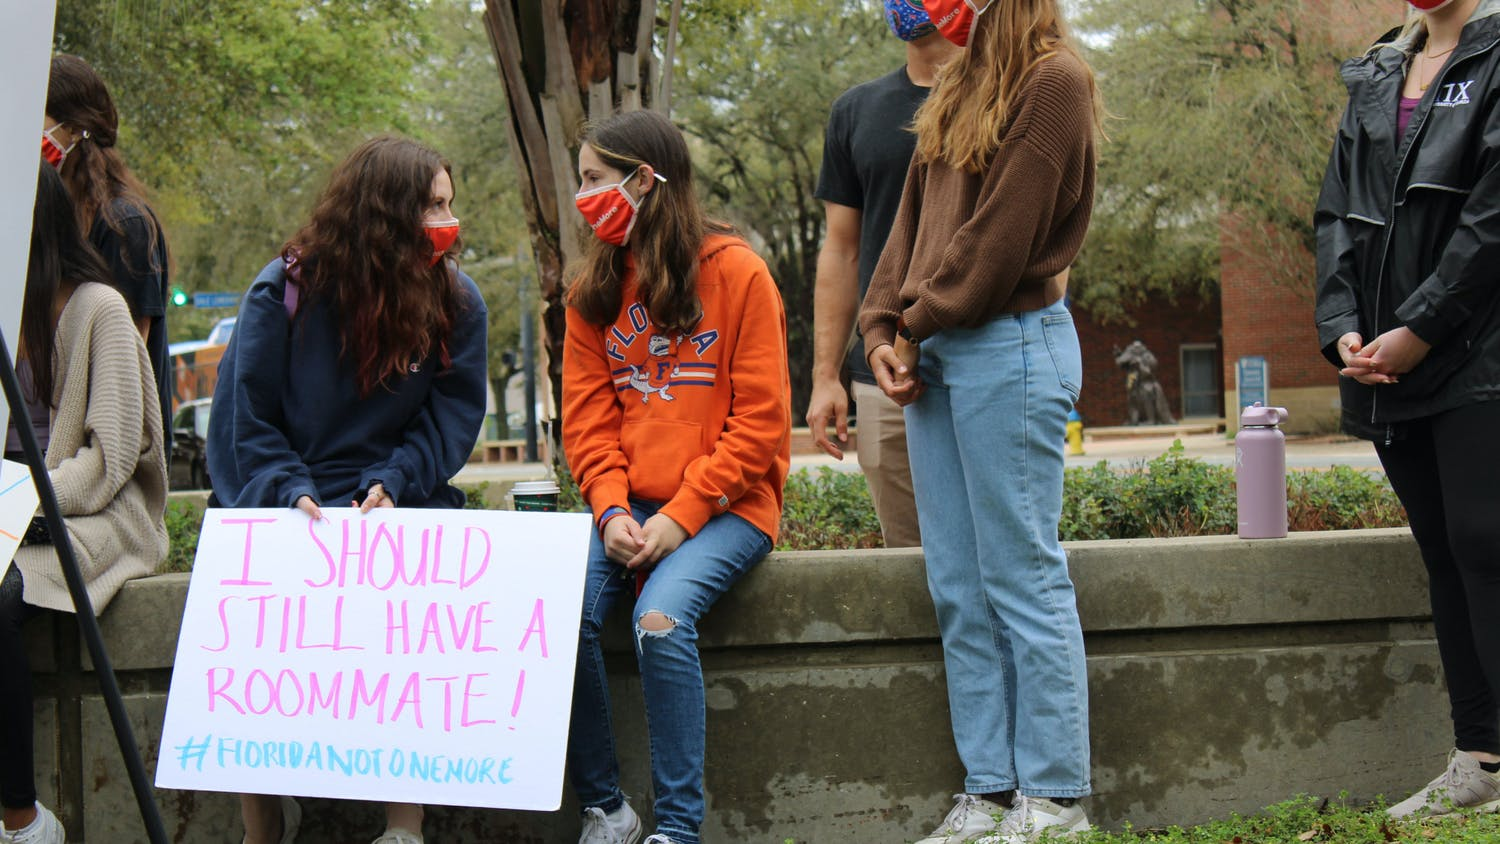 """Sydney Kaskin (left), 19, a neuroscience freshman and former roommate of Sophia Lambert holds a sign that says """"I should still have a roommate!"""" as she speaks with another member of the Florida Not One More student group during a press conference on Wednesday, March 3, 2021. The press conference was held by two attorneys representing the families of Sophia Lambert and Maggie Paxton in two wrongful death lawsuits that were recently filed."""